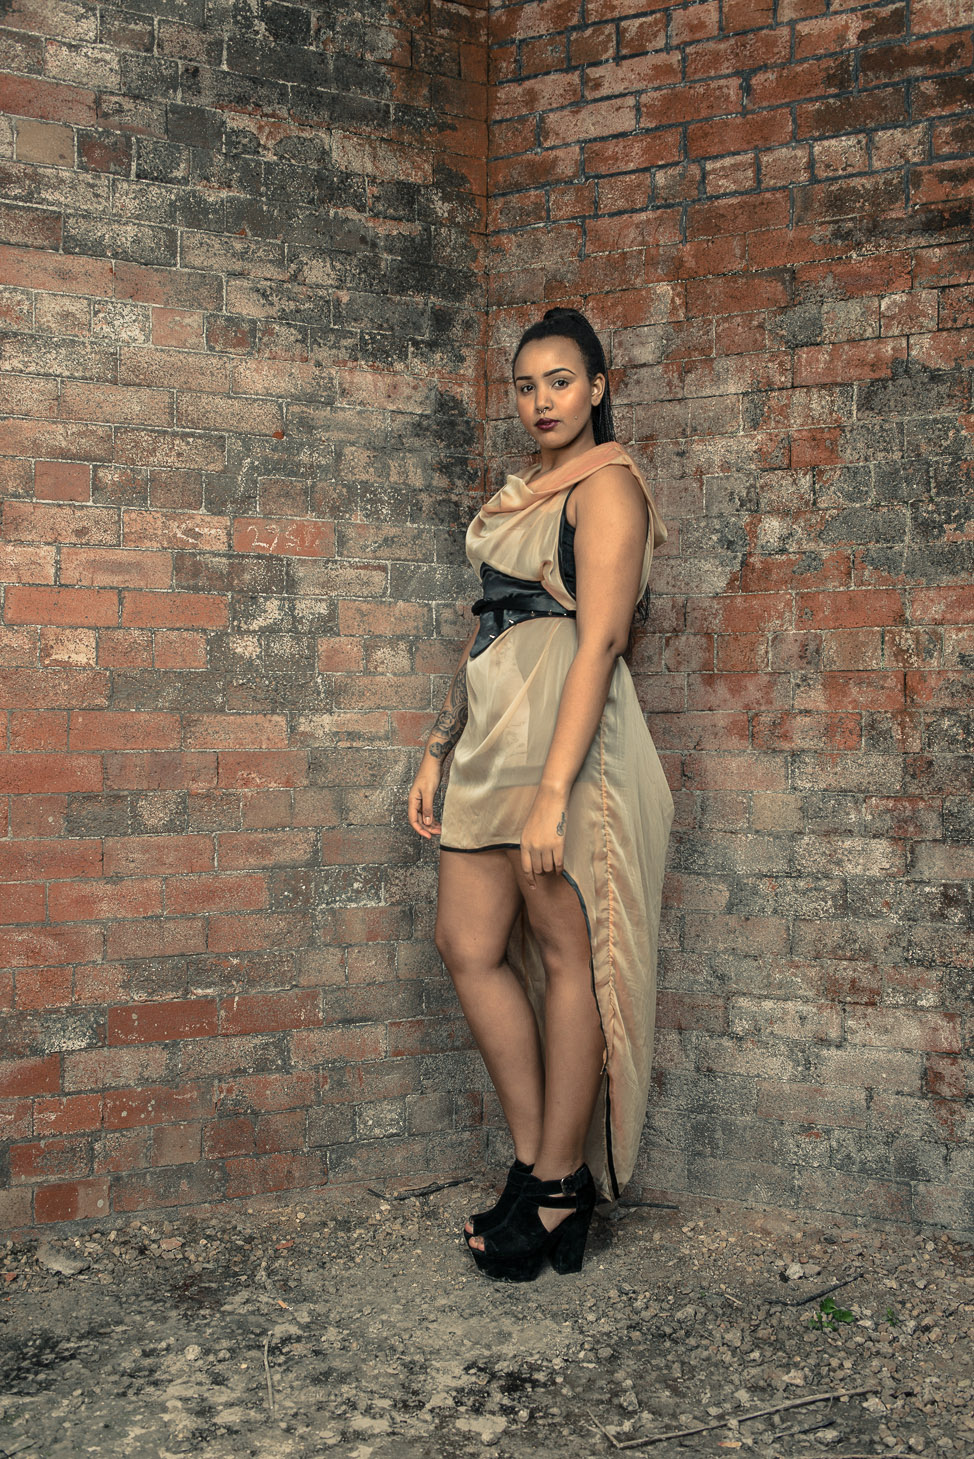 zaramia-ava-zaramiaava-leeds-fashion-designer-ethical-sustainable-tailored-minimalist-sheer-versatile-drape-dress-gold-binding-belt-wrap-cowl-styling-bodysuit-womenswear-models-photoshoot-location-4